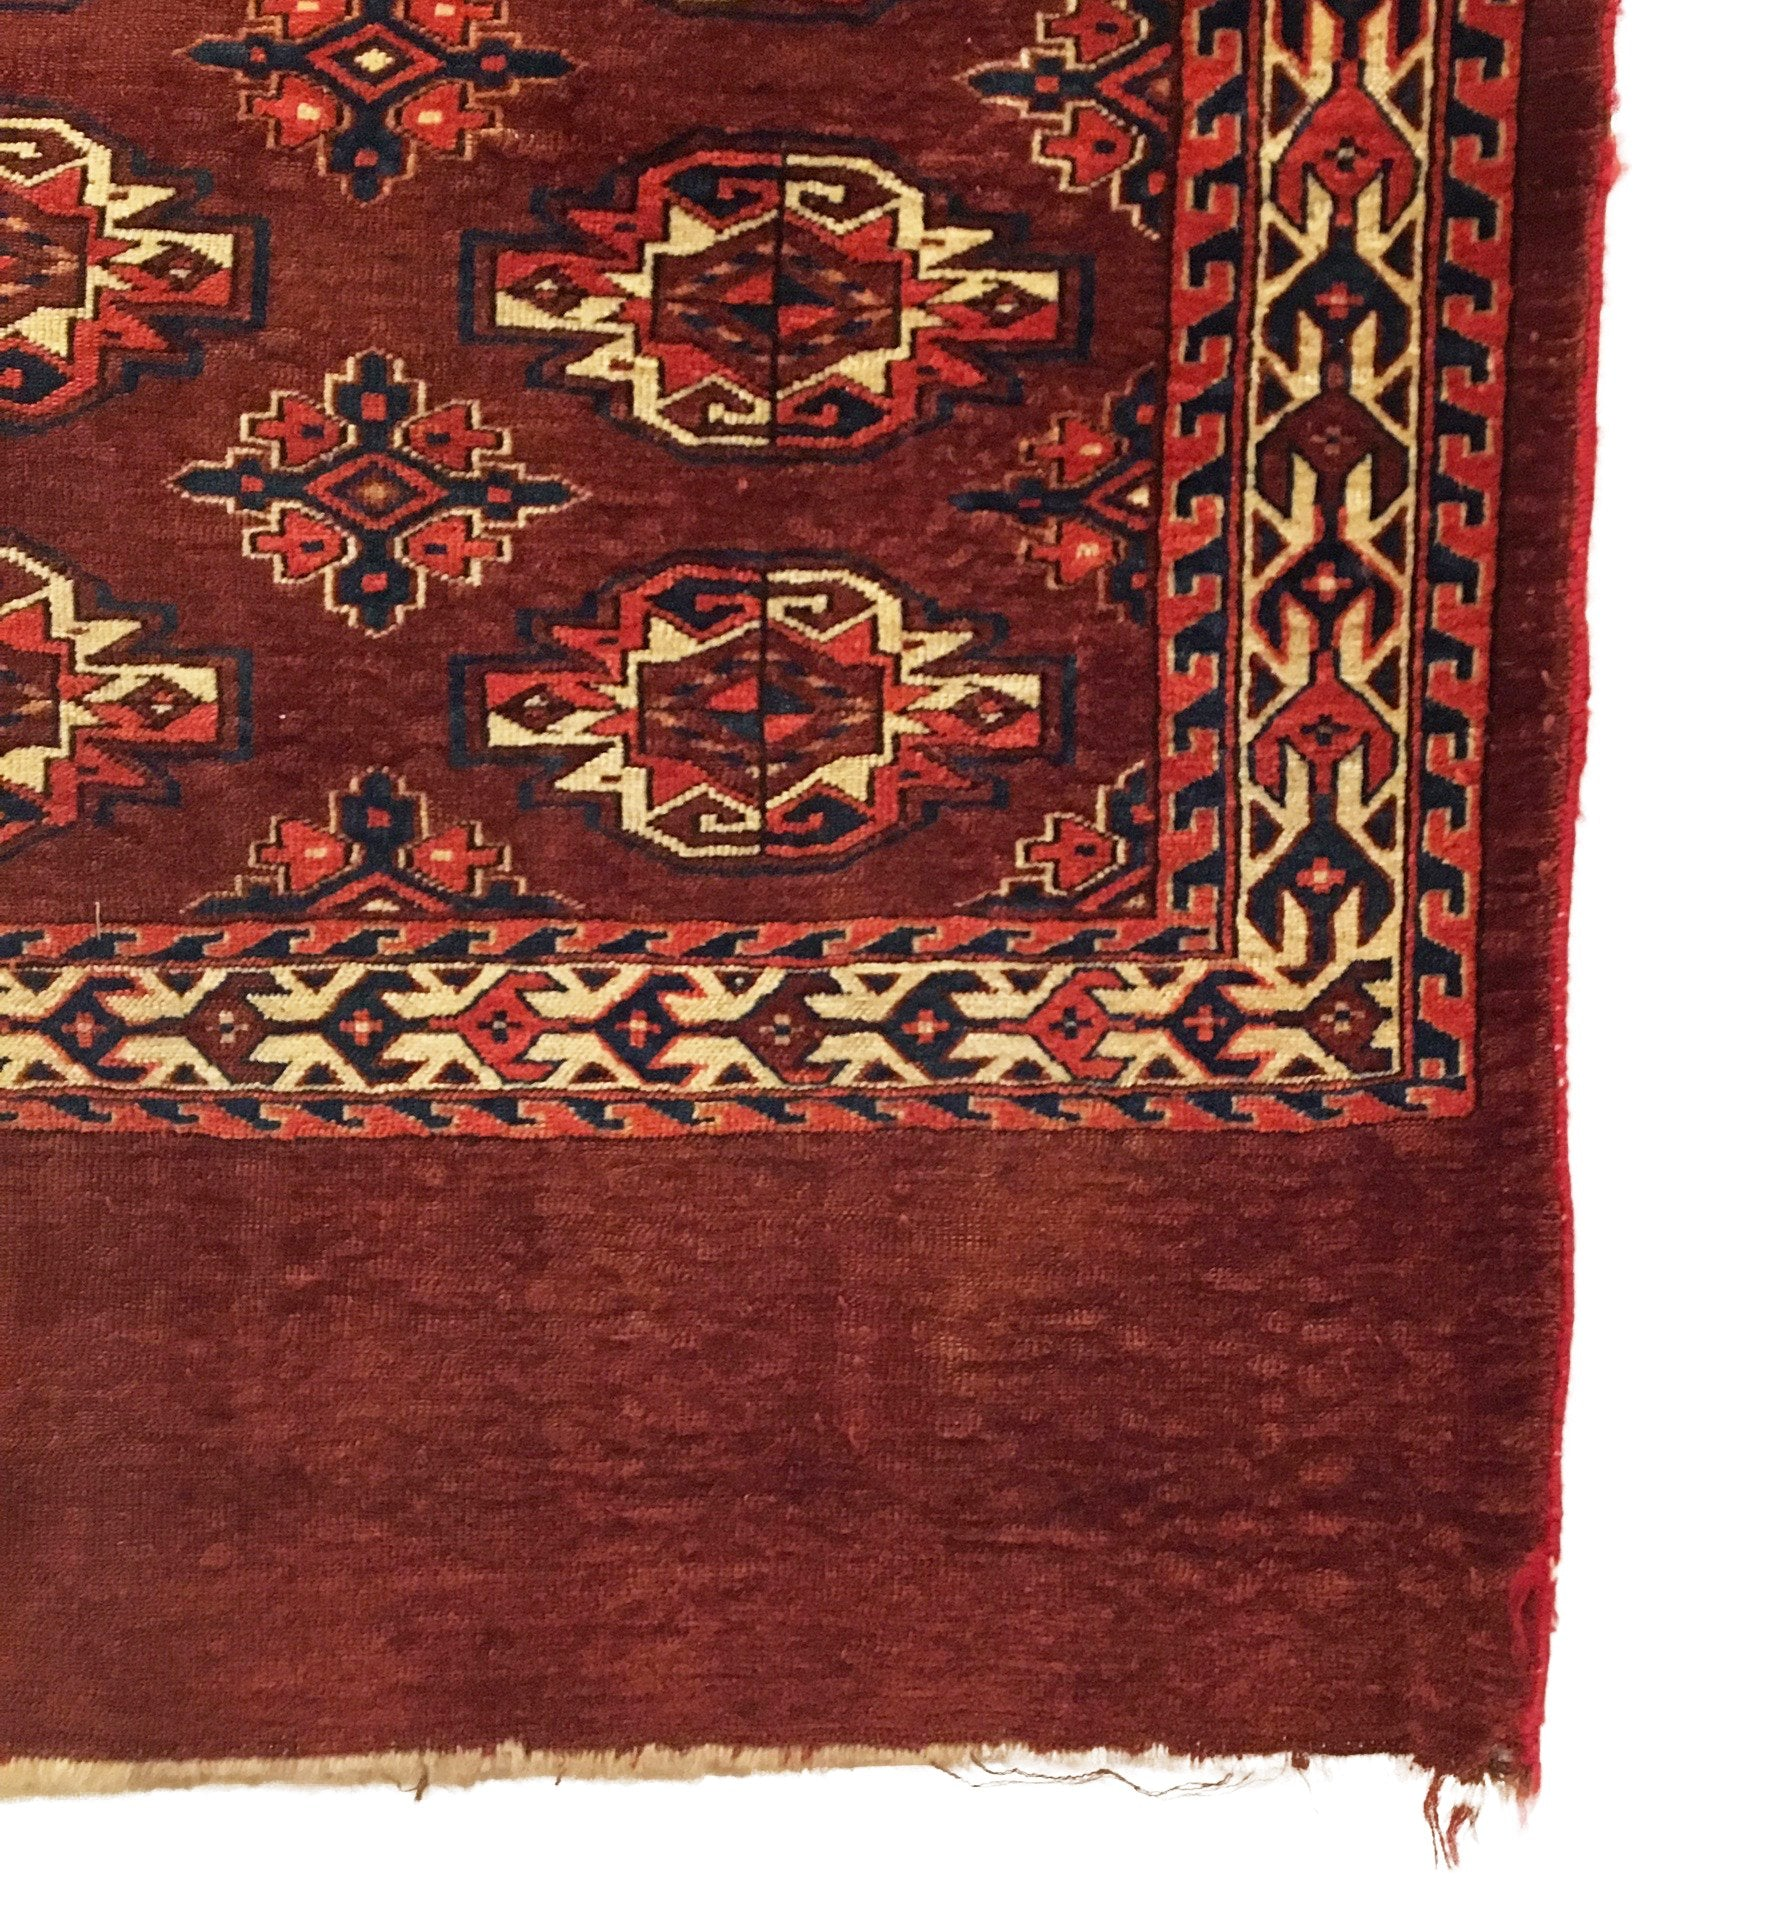 Antique Turkmen Yomud Small Rug 3'7 x 2'10